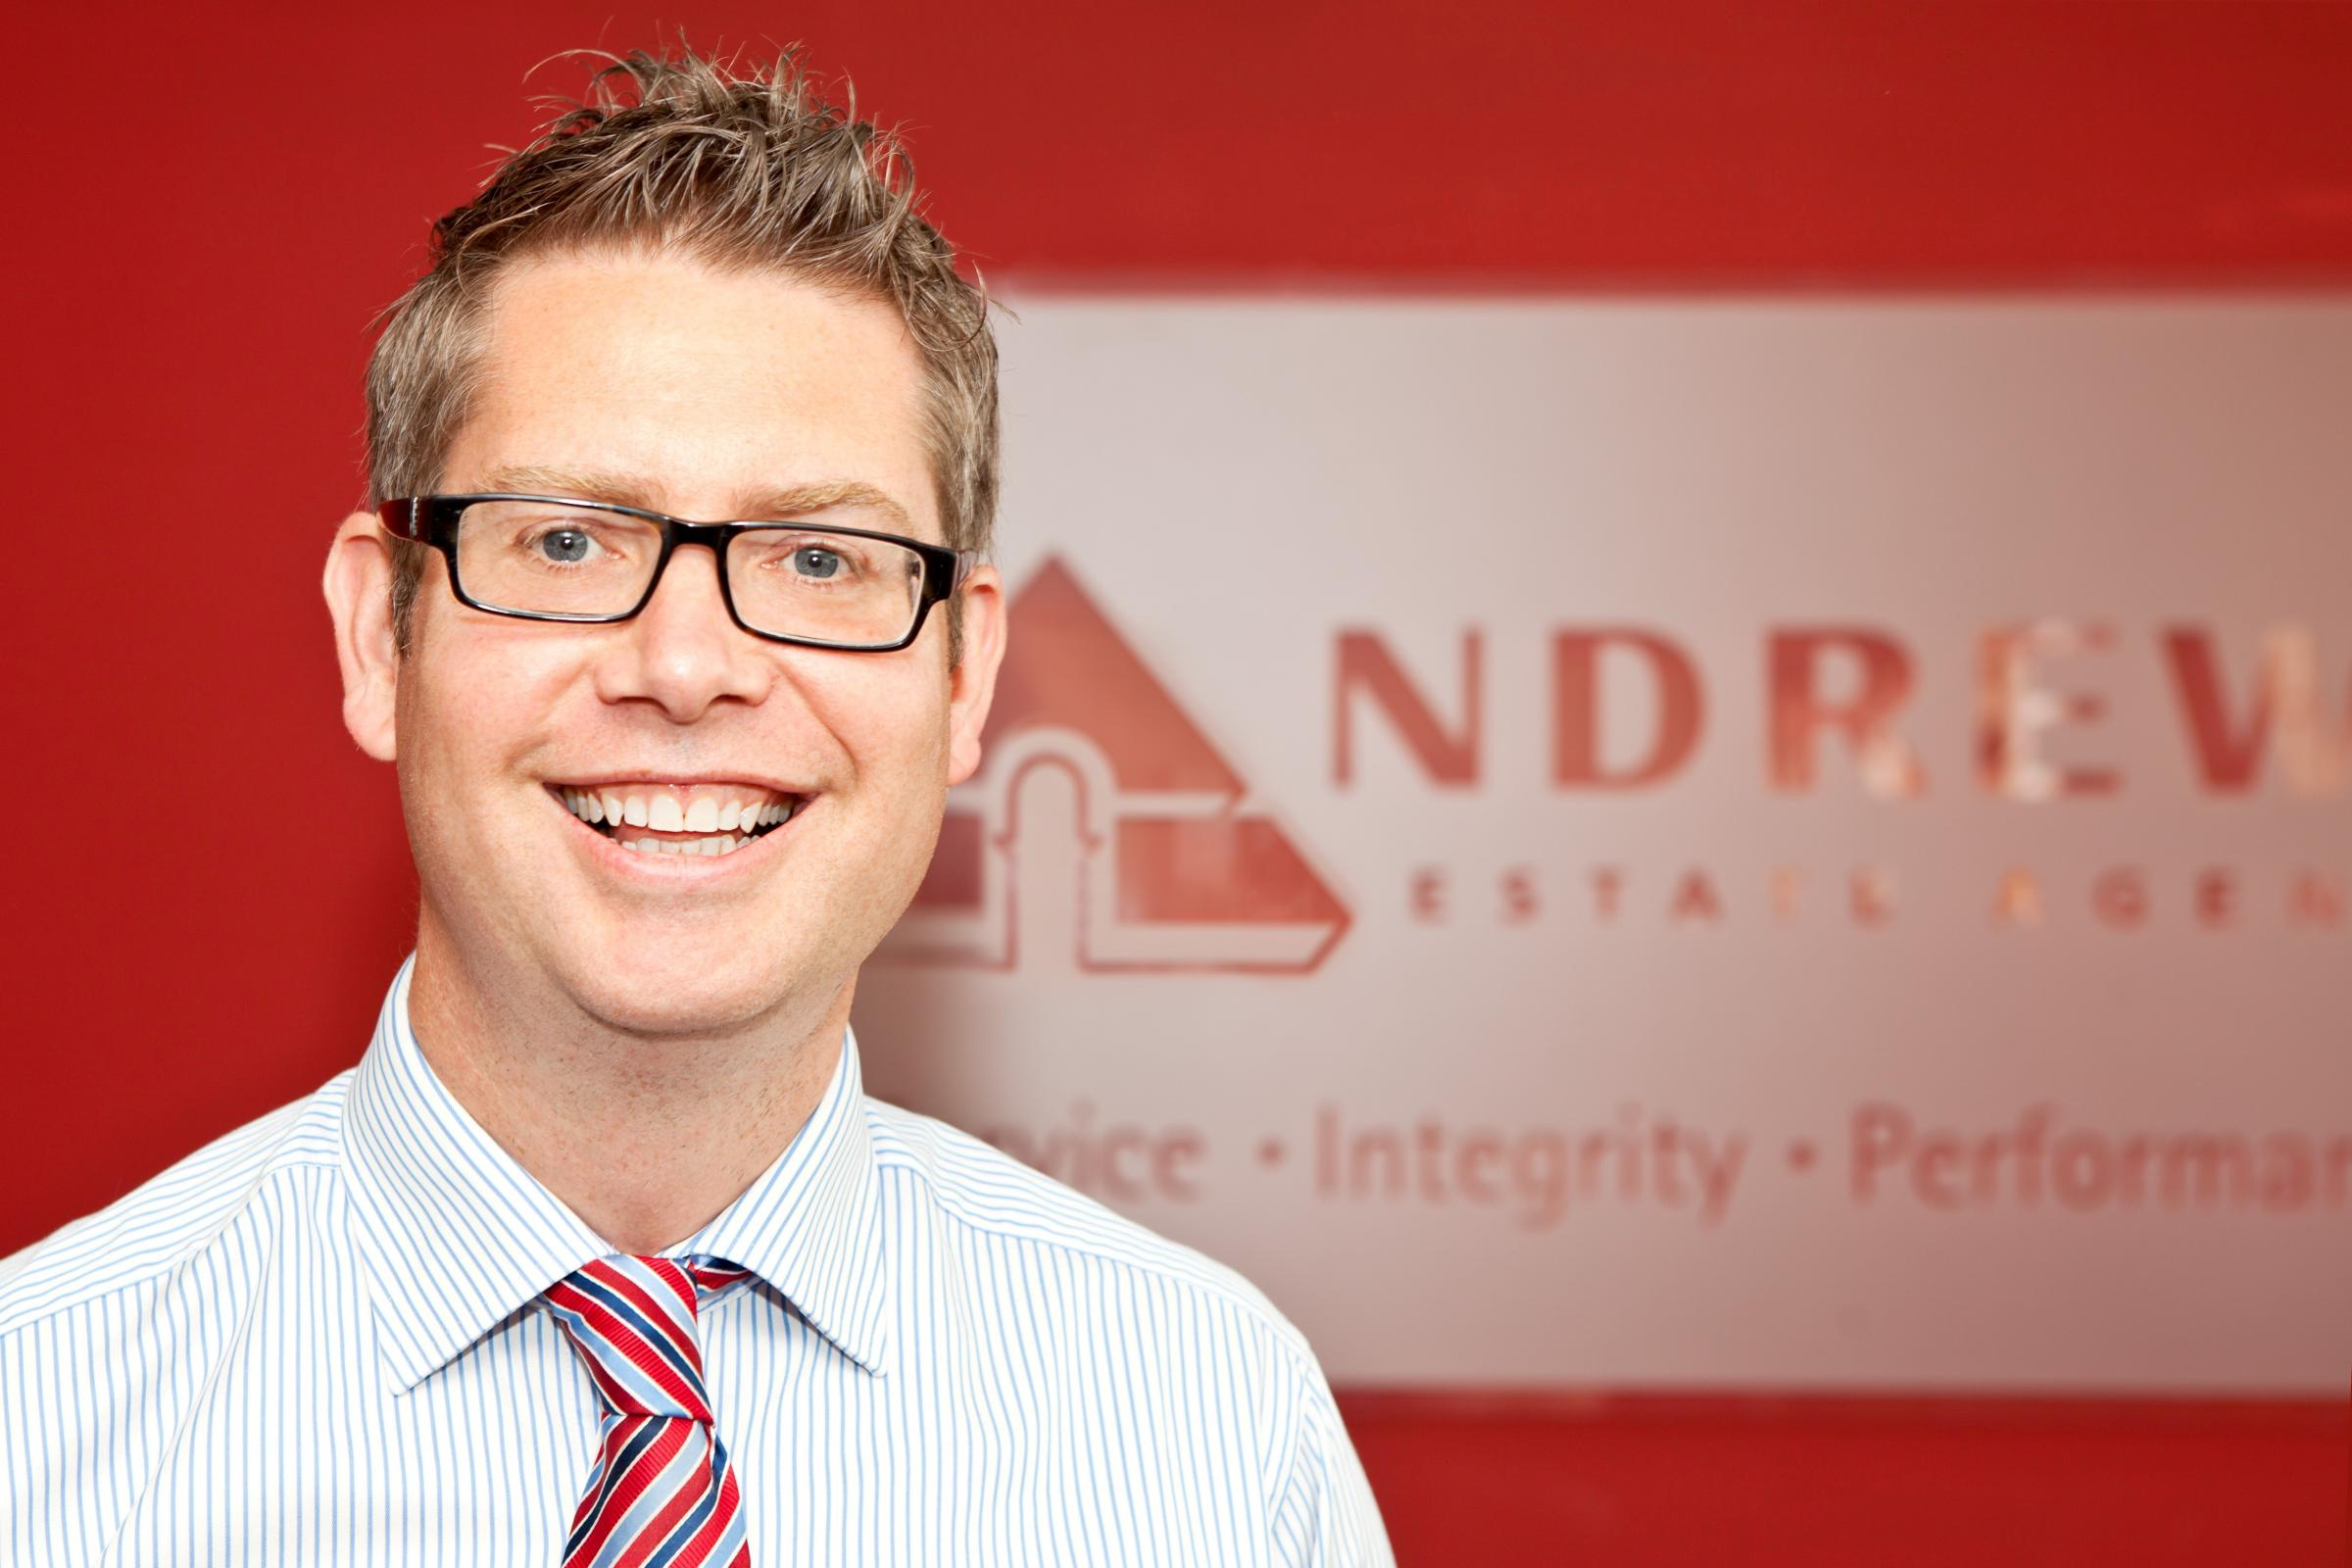 Jamie Dyer, Stroud branch manager, Andrews 01453 766753